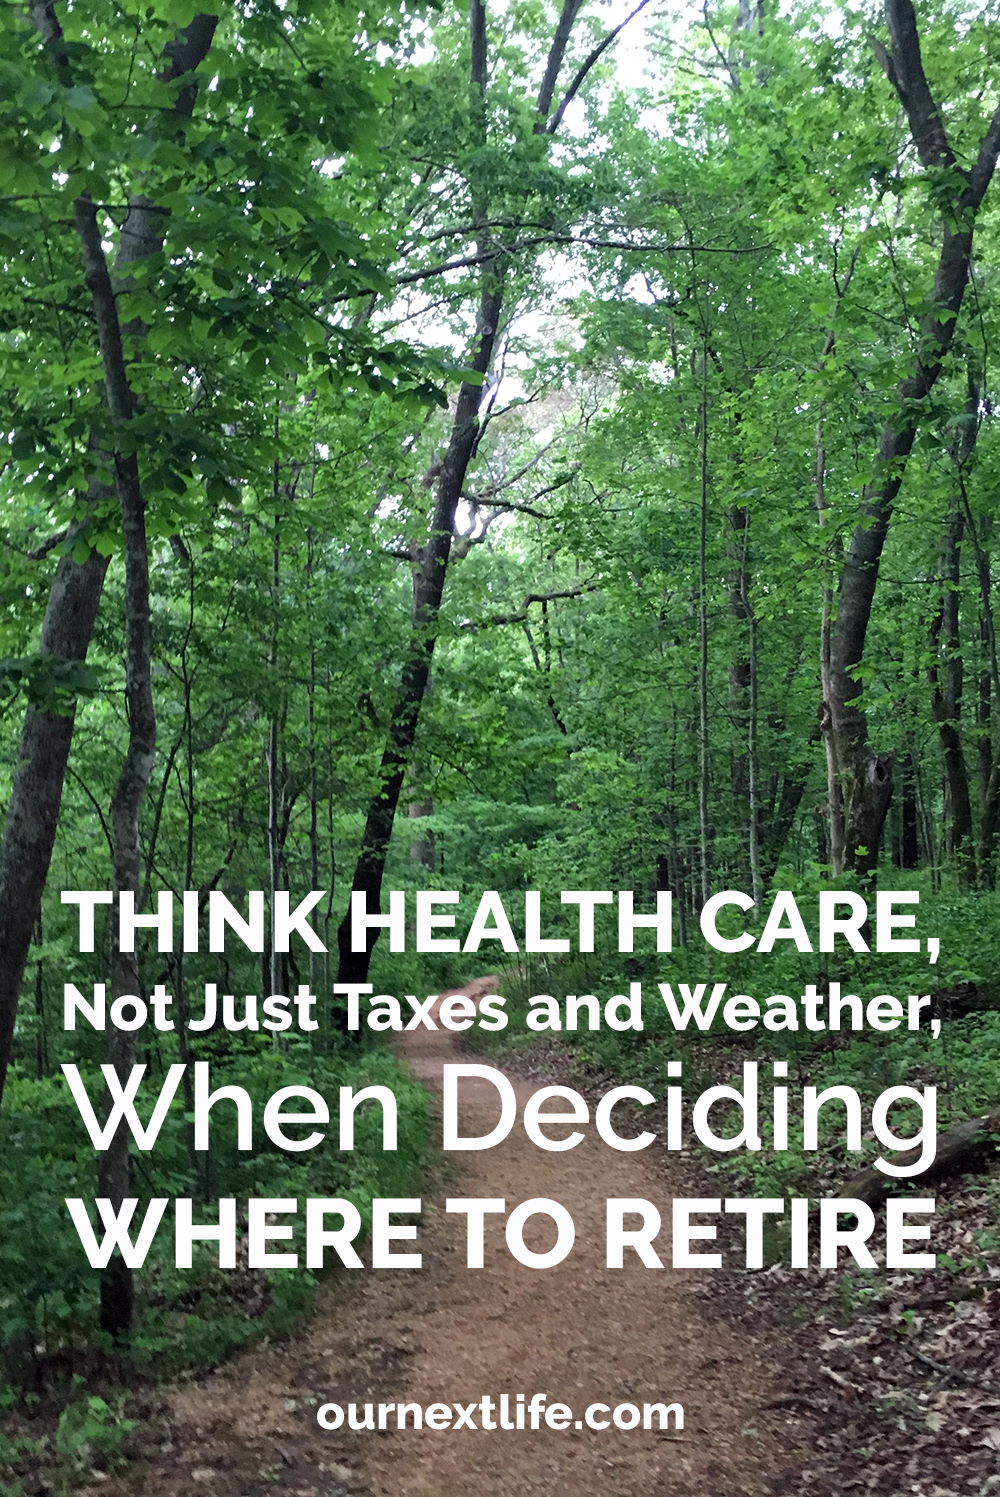 Think Health Care, Not Just Taxes and Weather, When Deciding Where to Retire // Best states to retire to, states with best health care, best states for retirement health care, best states for health insurance